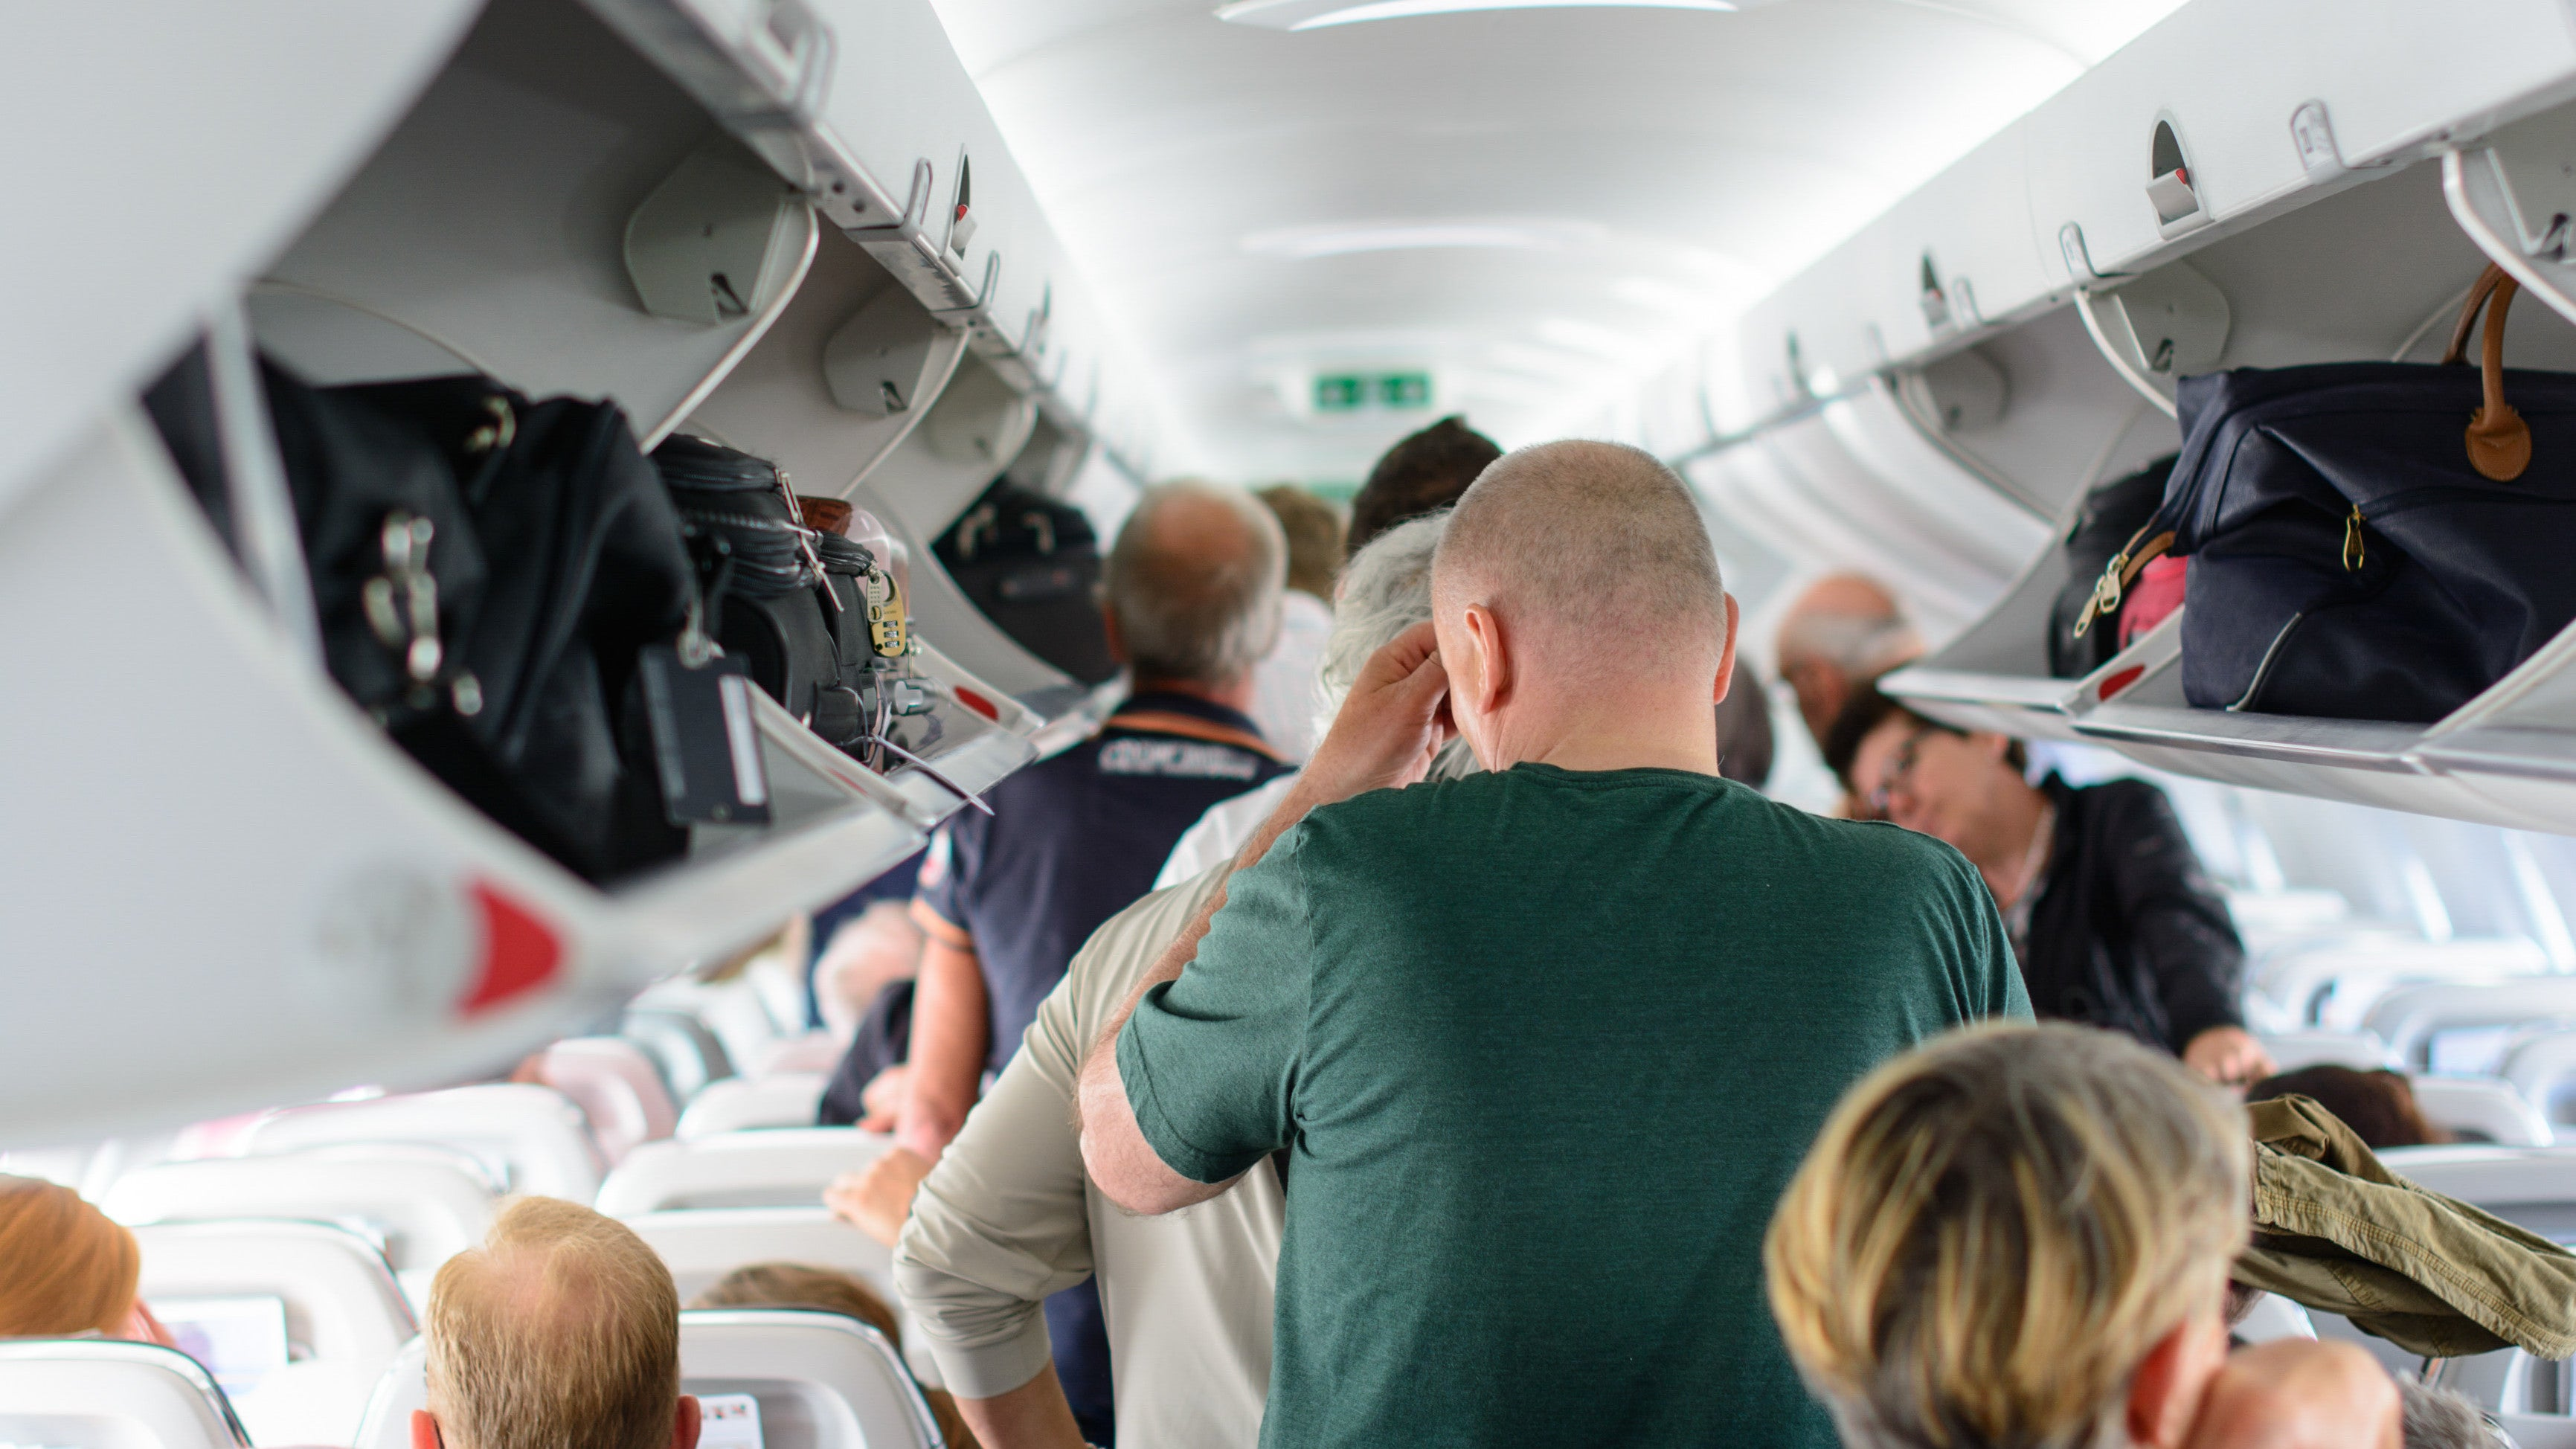 What's The Correct Etiquette For Getting Off A Plane?